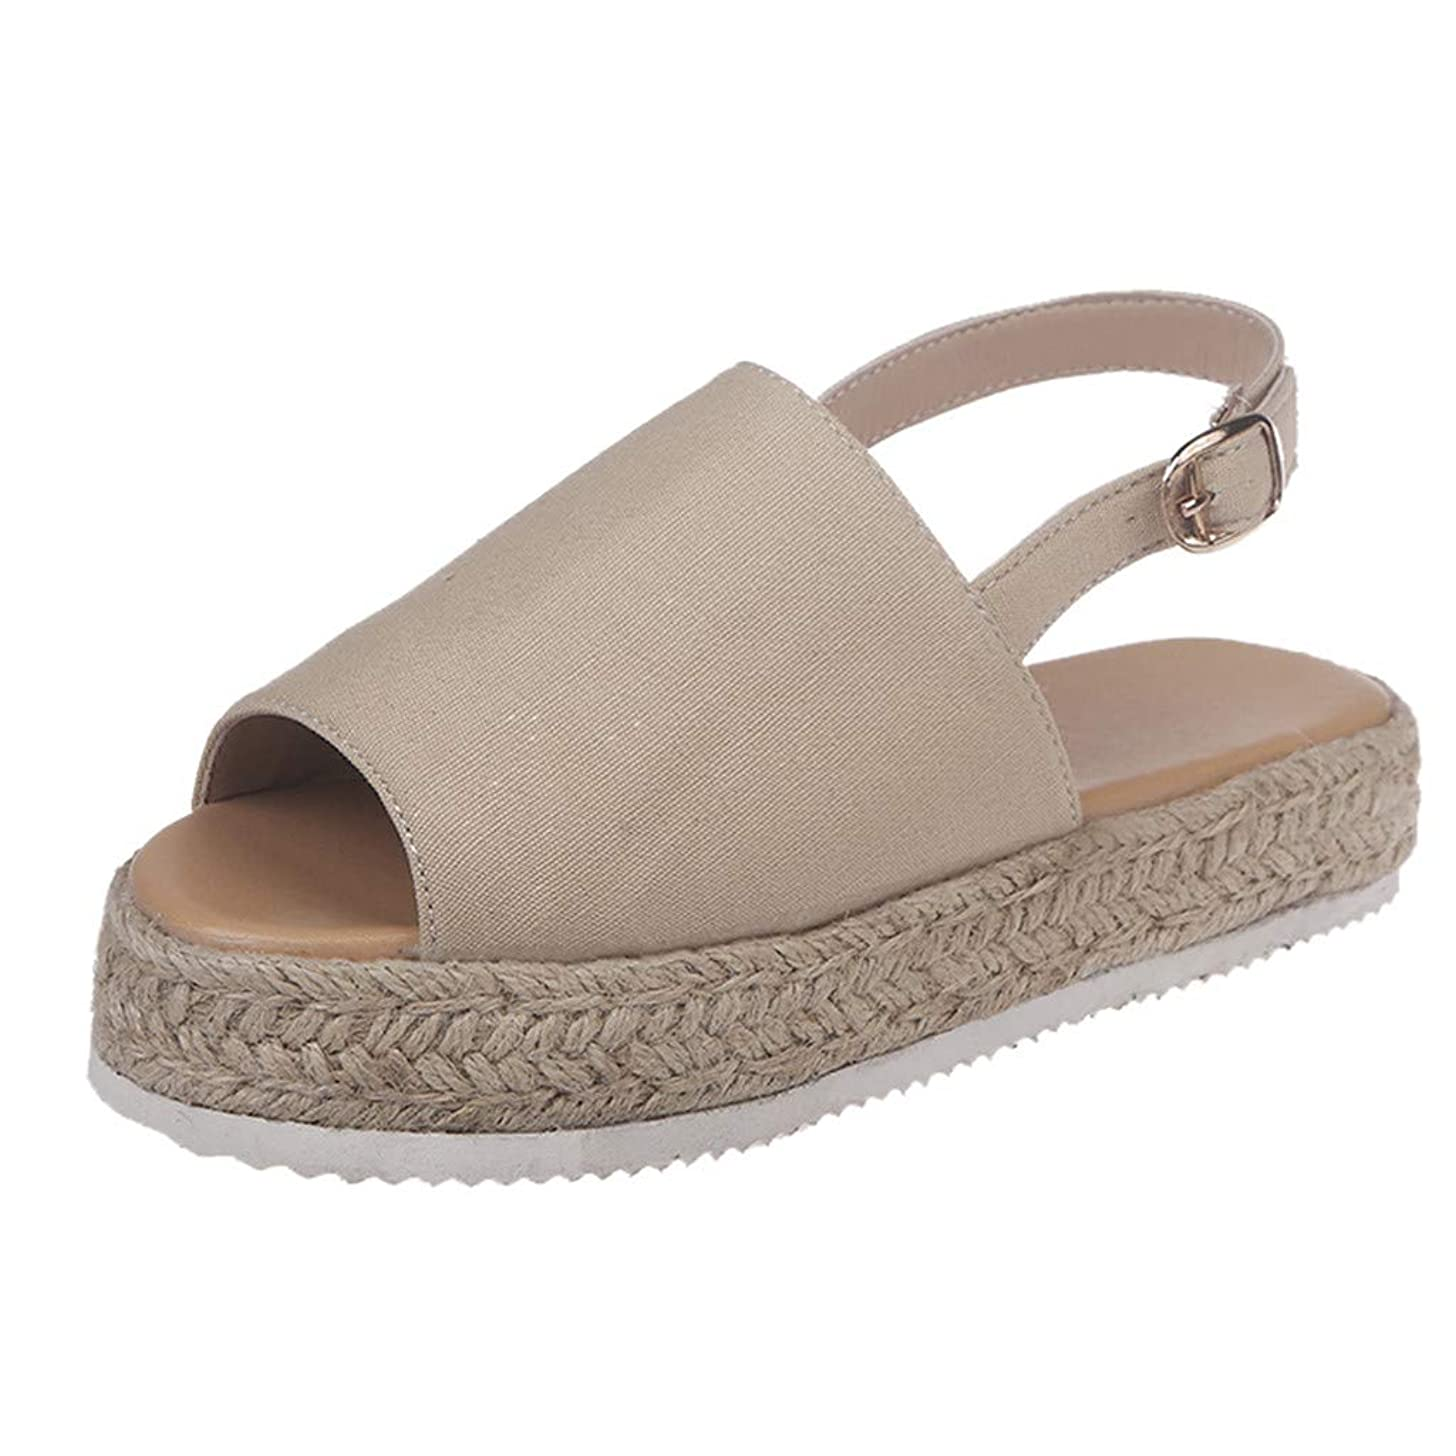 Women's Stylish Solid Platform Espadrilles Flat Shoes Beach Casual Ankle Strap Block Wedges Sandals JHKUNO